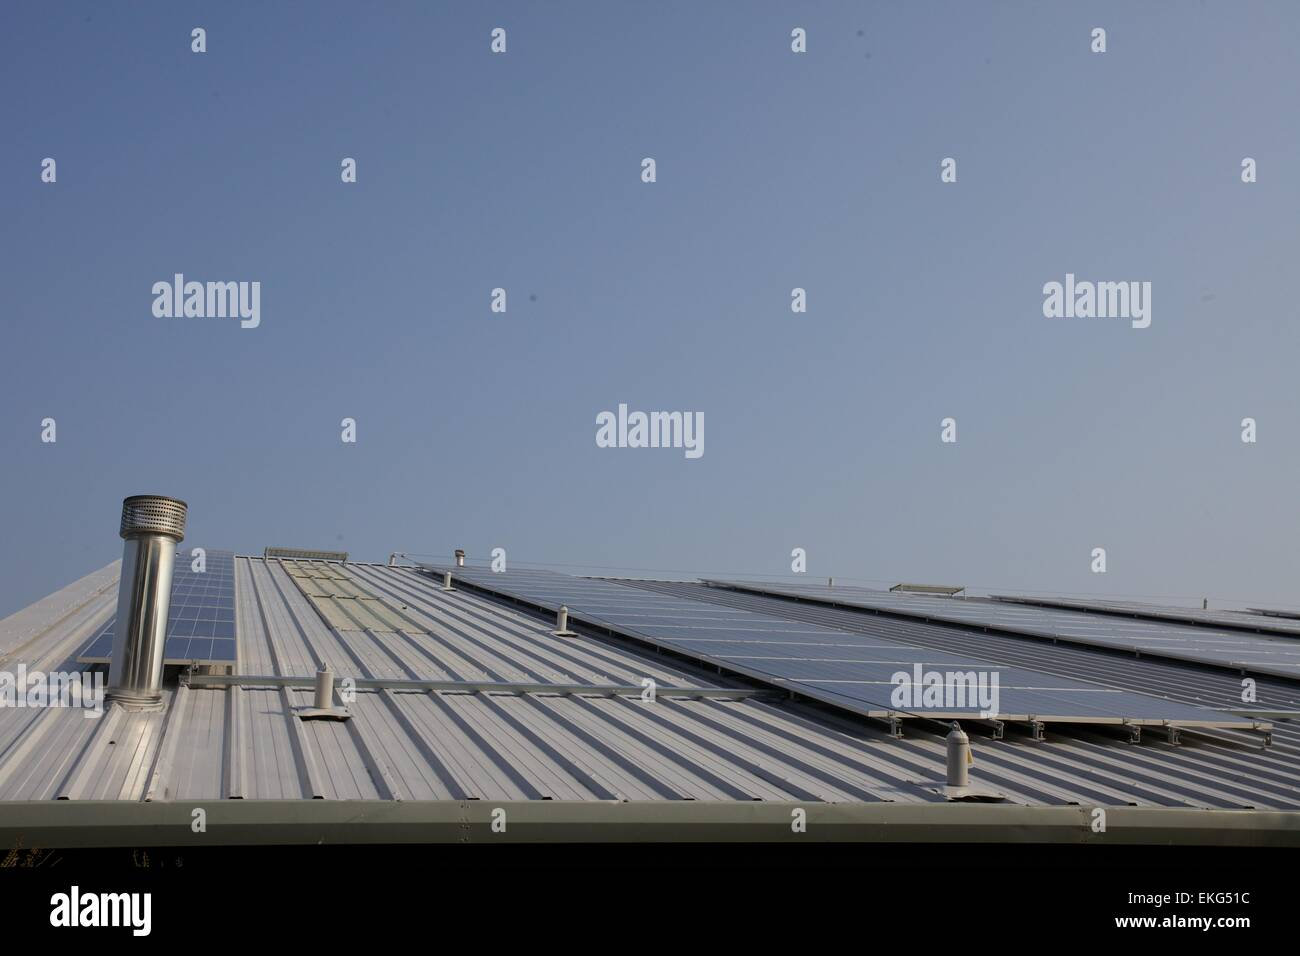 Galvanized roof with solar panels - Stock Image